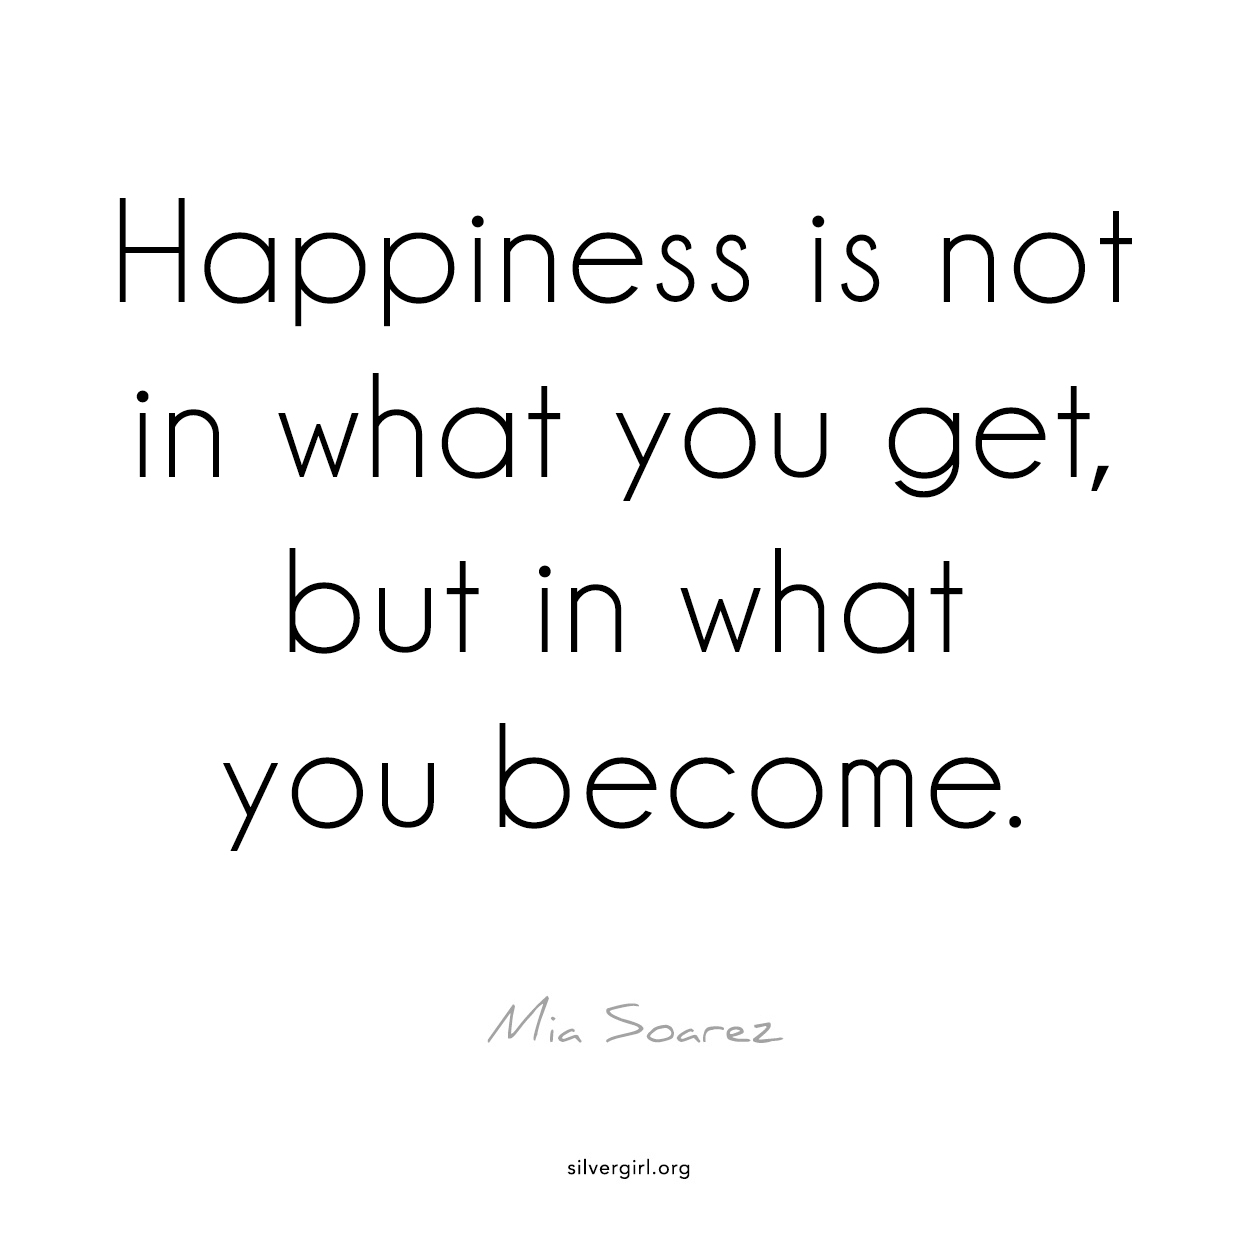 Happiness is not in what you get, but in what you become. - Mia Soarez